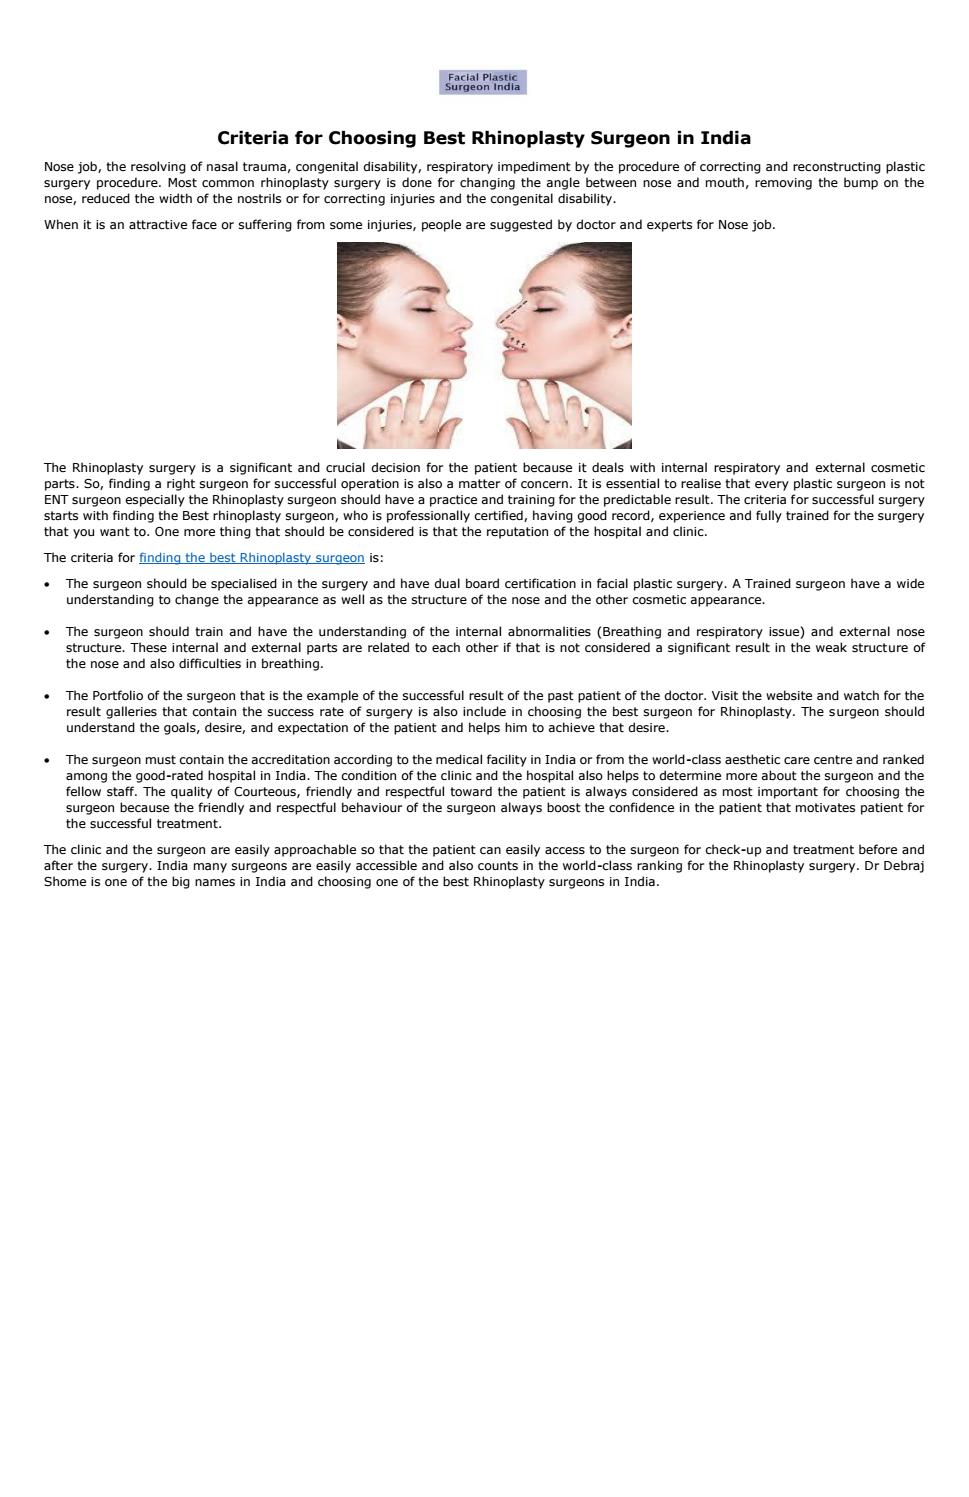 Criteria for choosing best rhinoplasty surgeon in india by